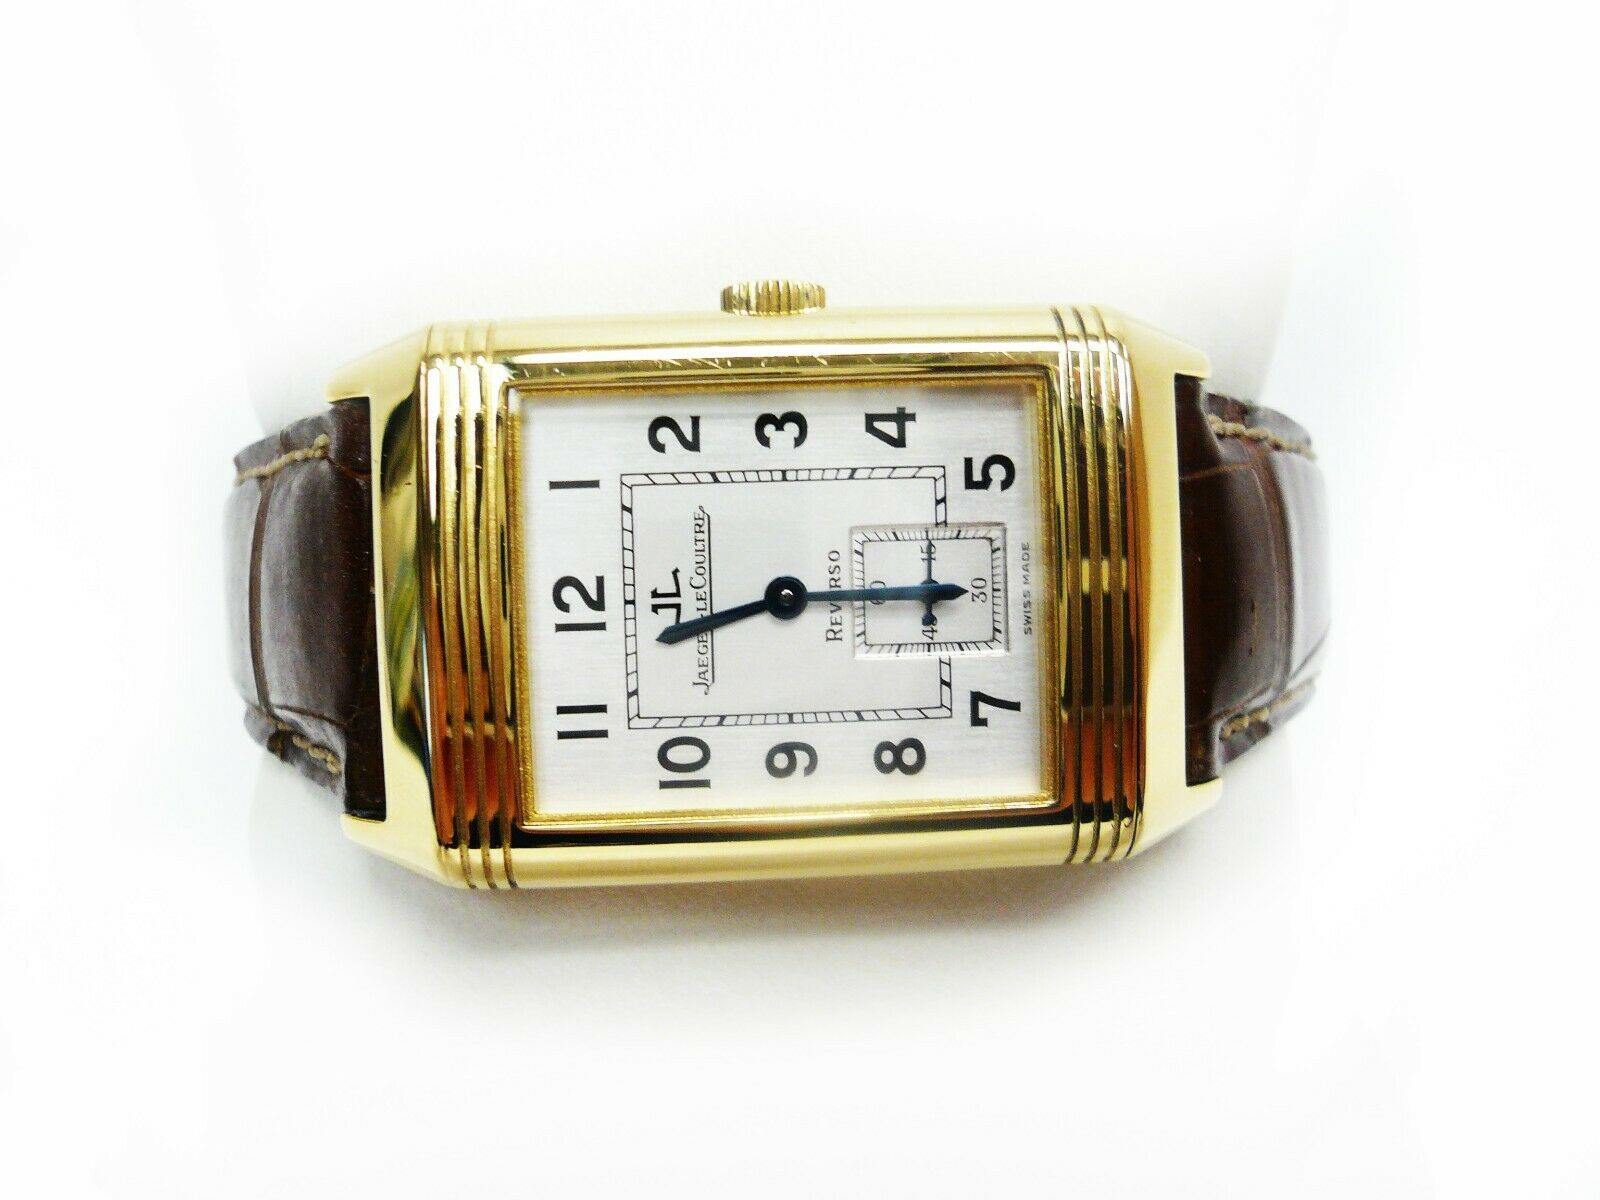 Jaeger-Lecoultre Reverso 18K Gold Grand Taille 270.1.62. Strap Mechanical Watch - watch picture 1